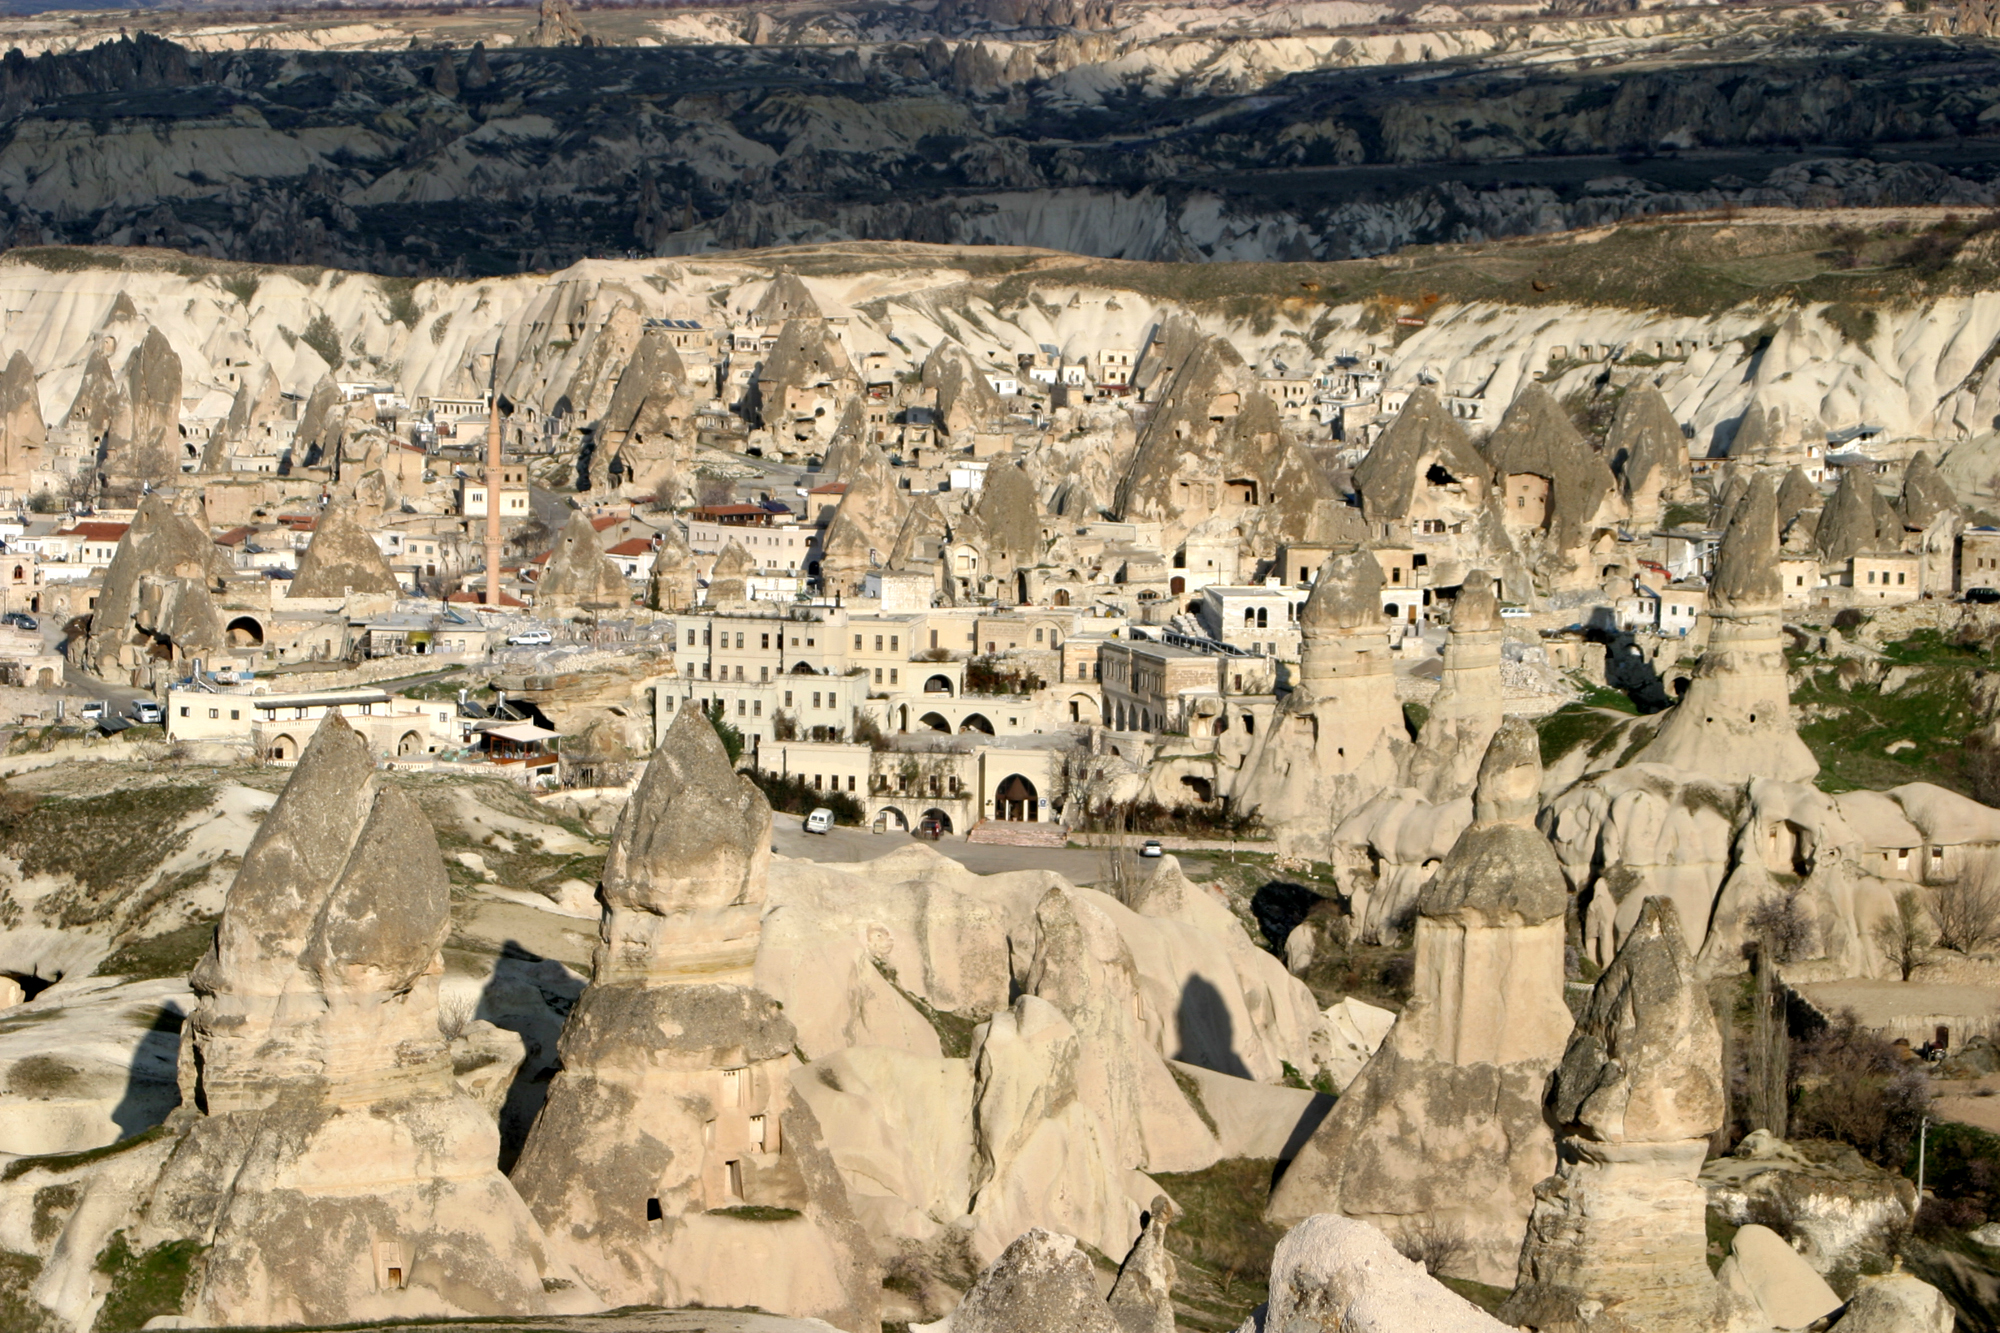 File:Cappadocia in Turkey.jpg - Wikimedia Commons